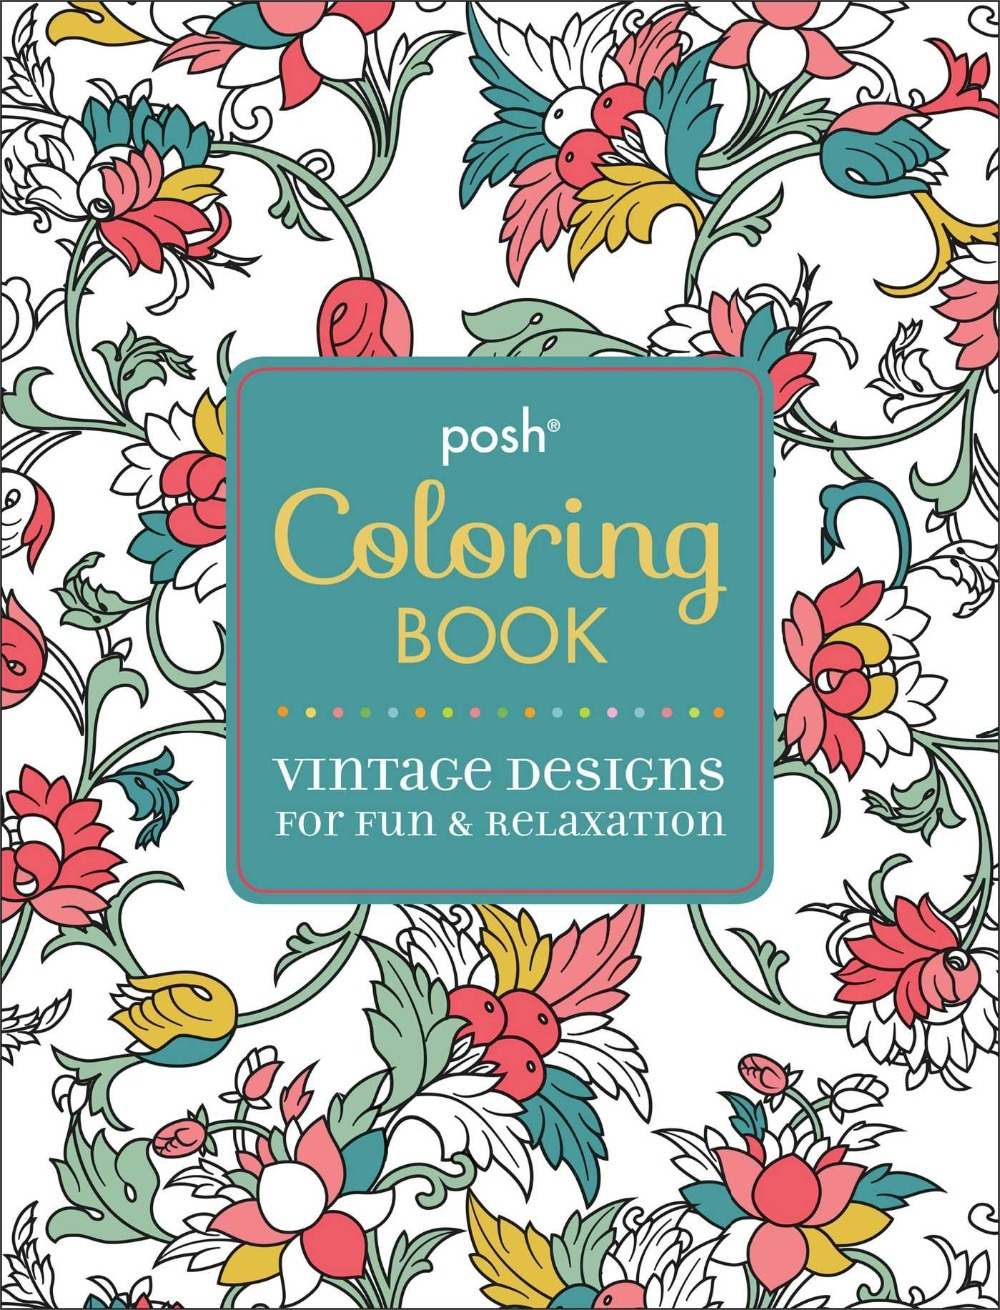 Posh coloring book soothing designs for fun and relaxation - Aliexpress Com Buy Posh Adult Coloring Book Vintage Designs For Fun Relaxation Coloring Books For Adults From Reliable Book Education Suppliers On